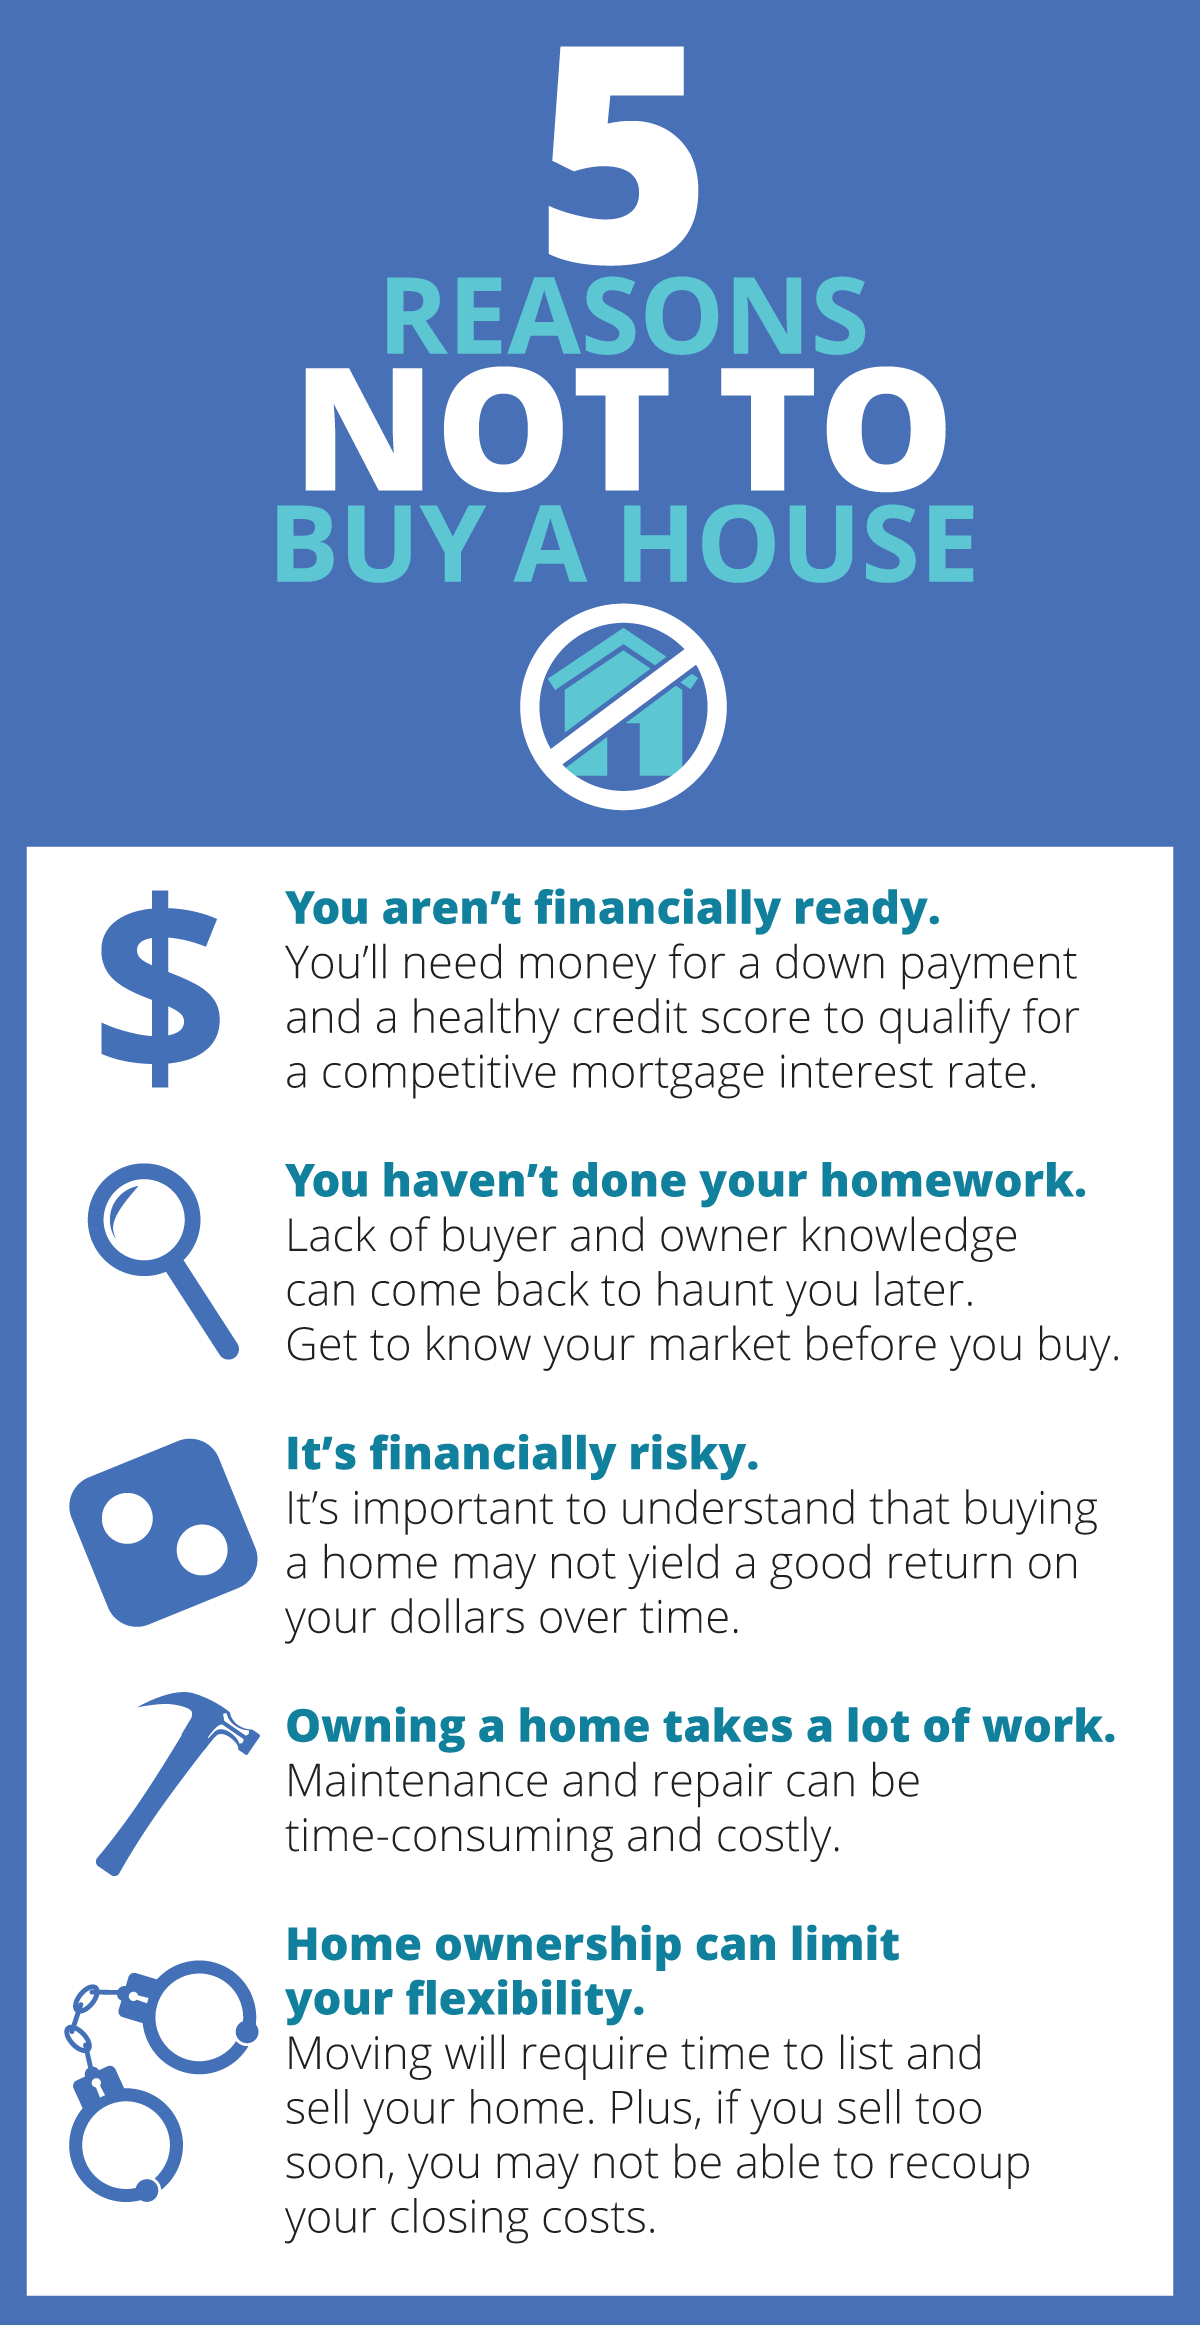 5 reasons not to buy a house